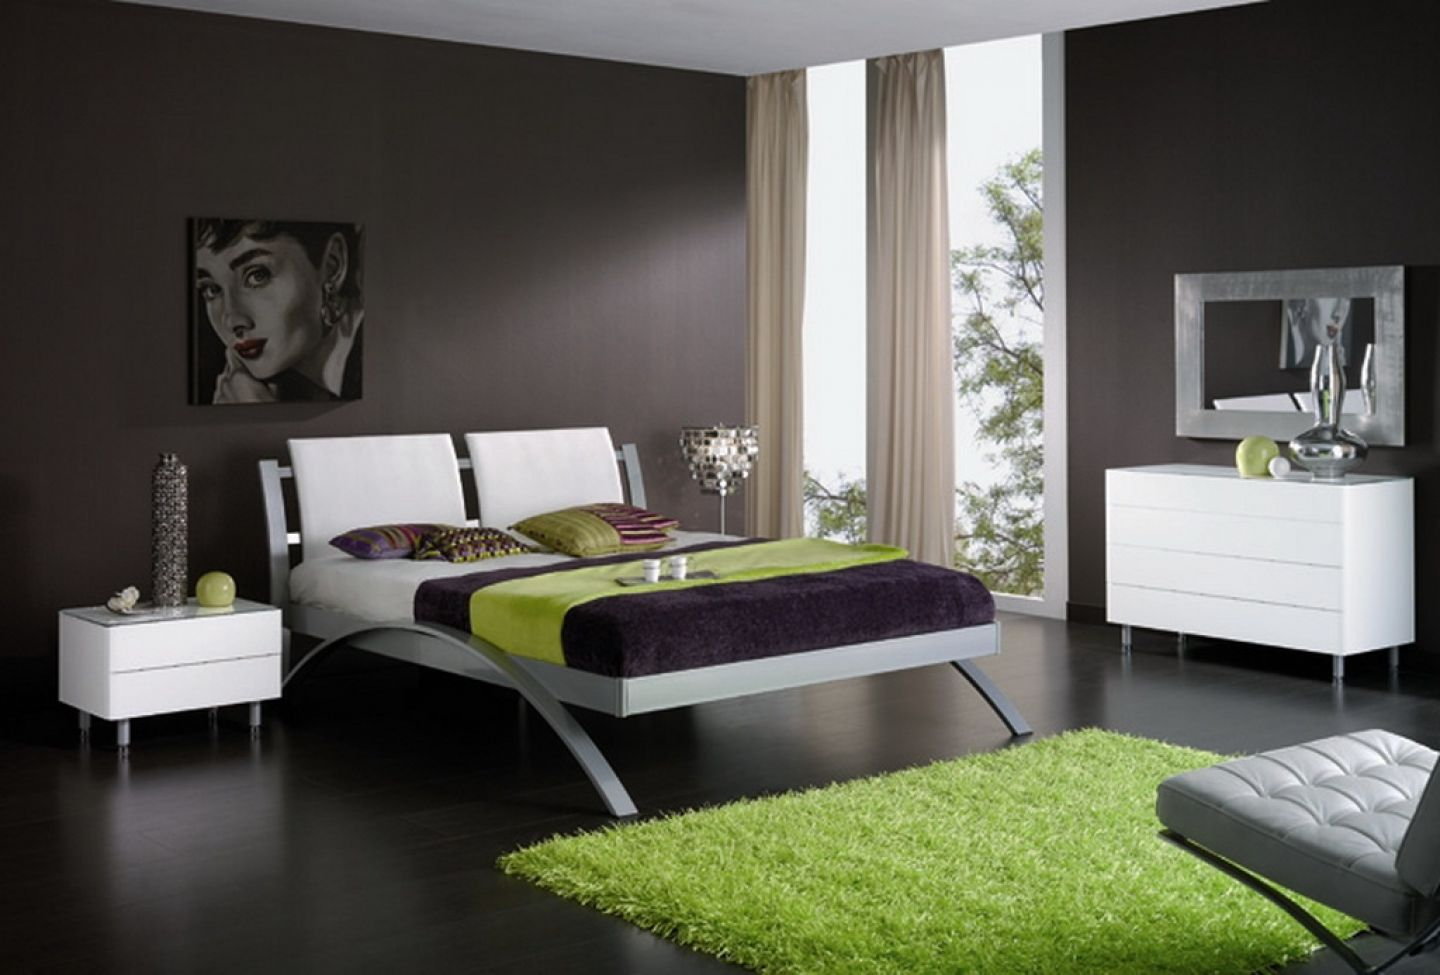 Bedroom Colors Black sophisticated black color scheme interior decorating idea for